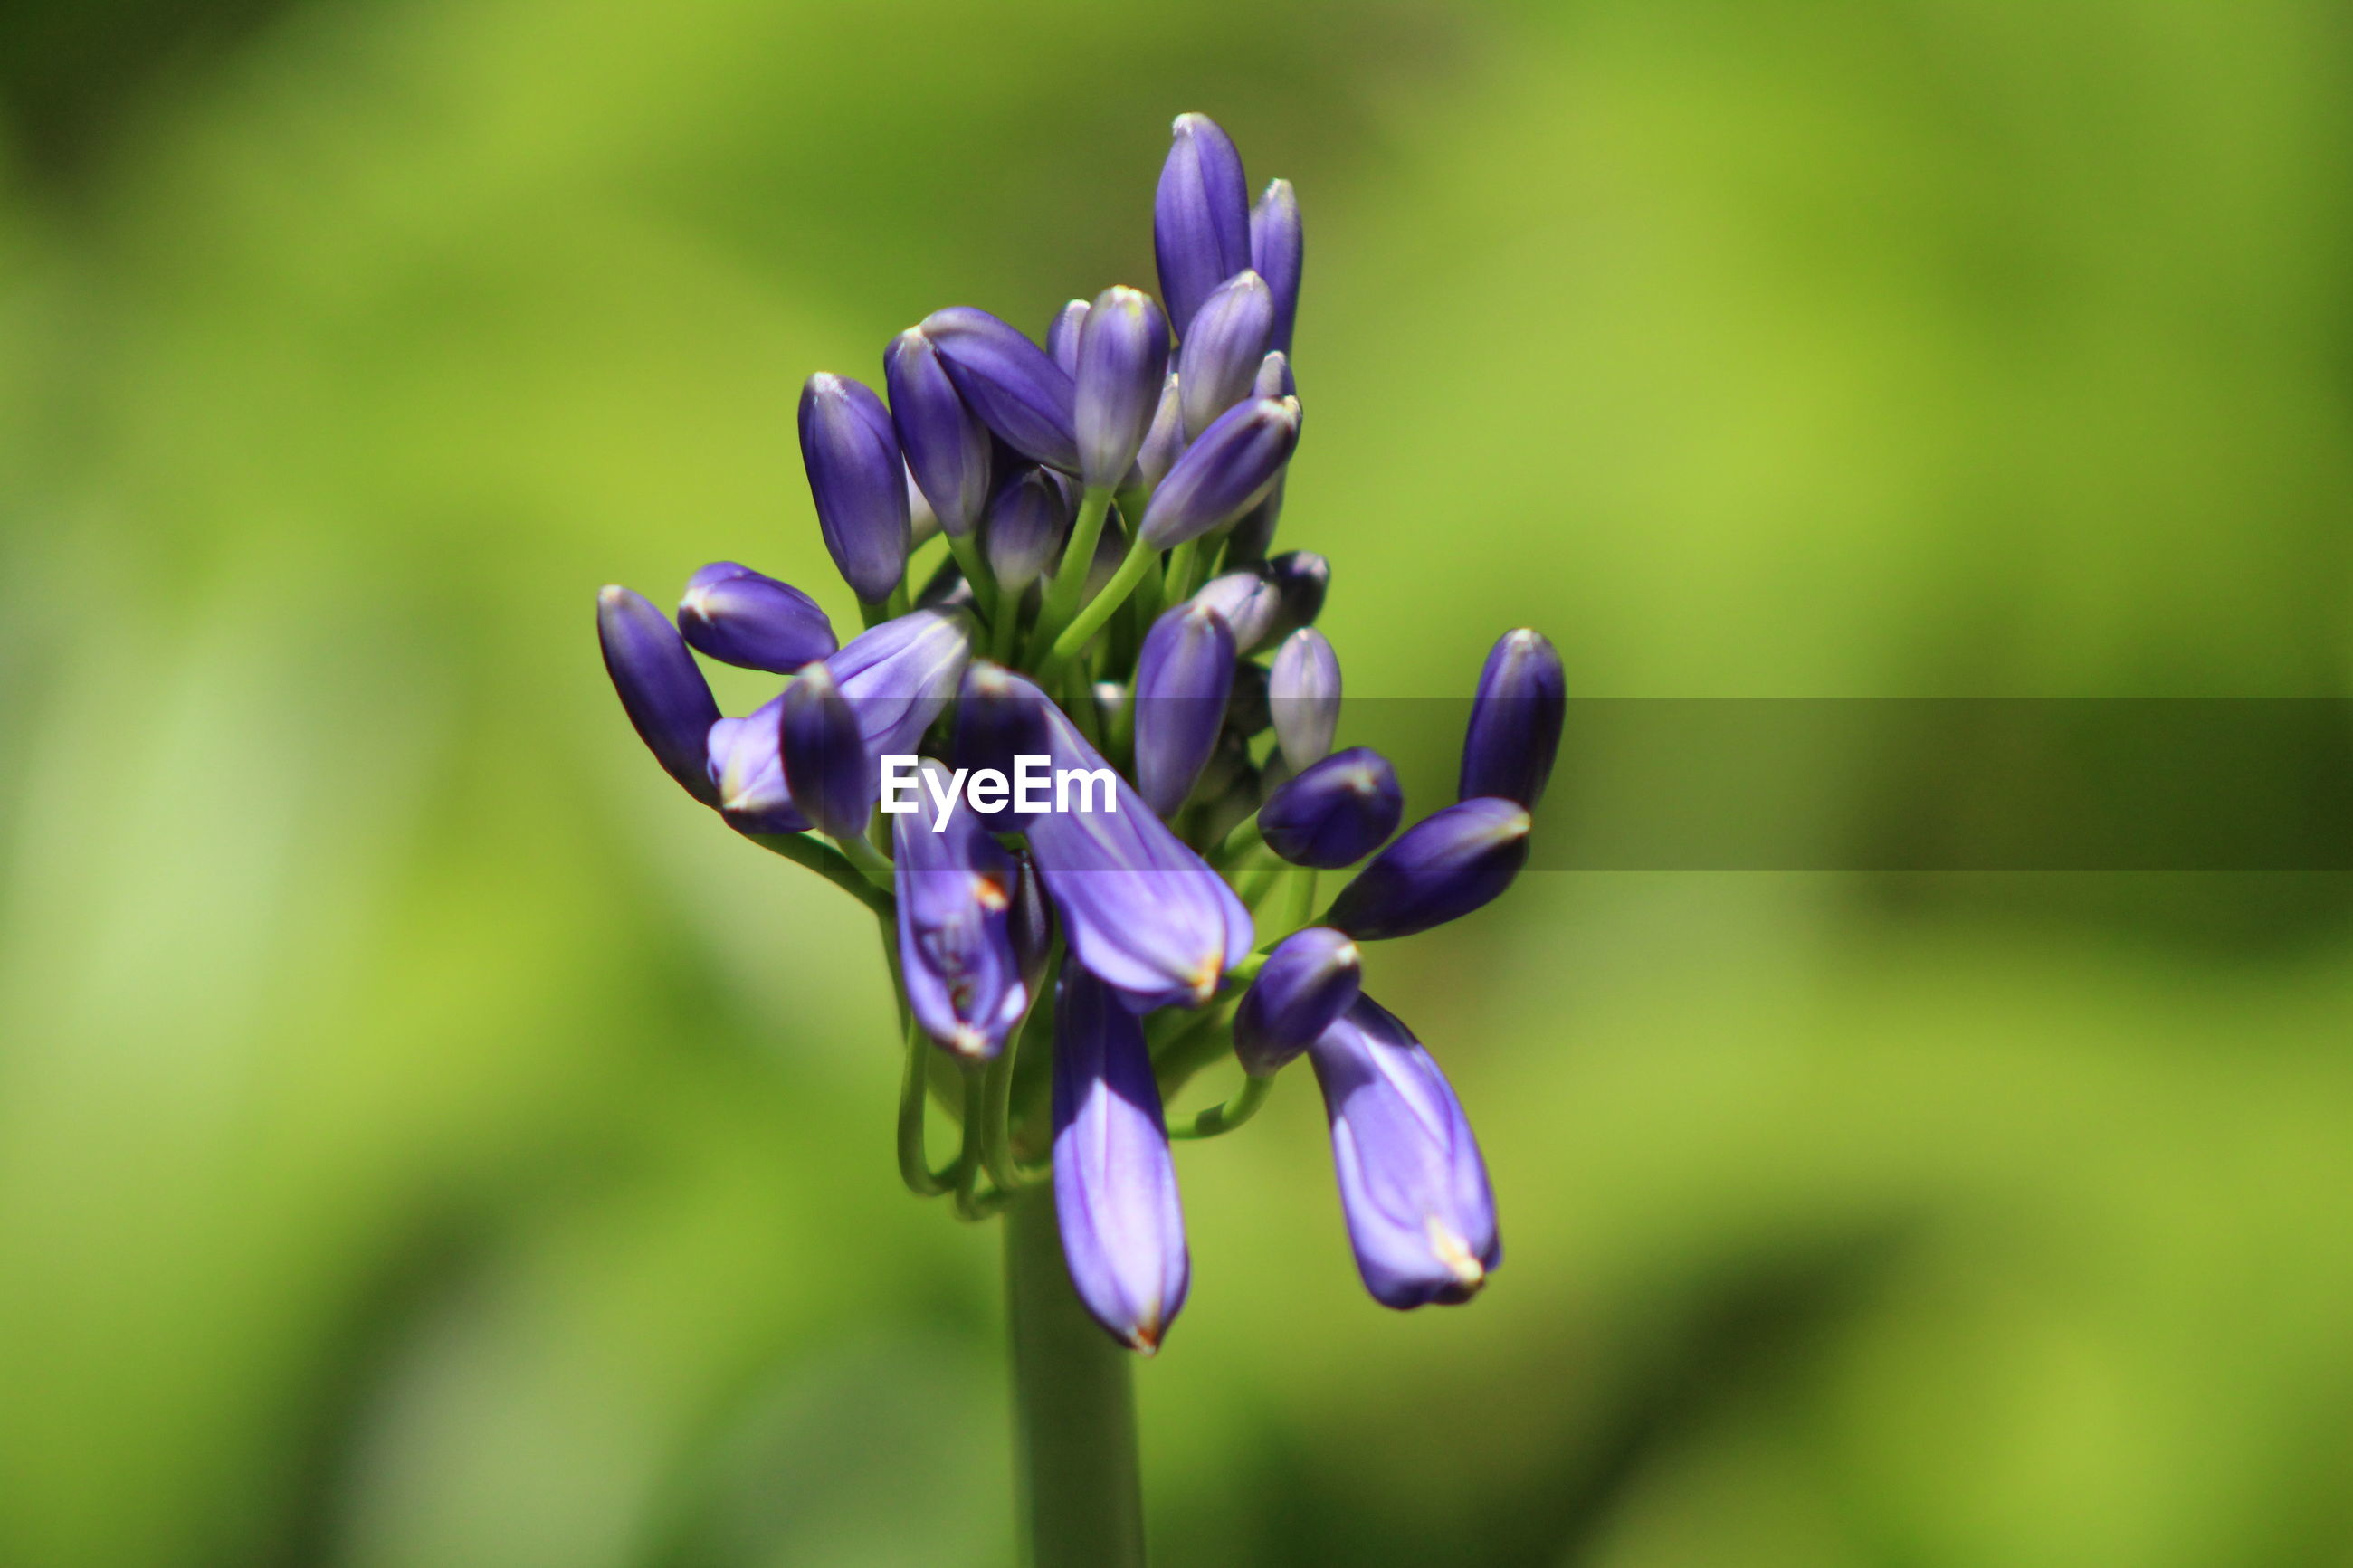 Close-up of purple flowering plant african lily